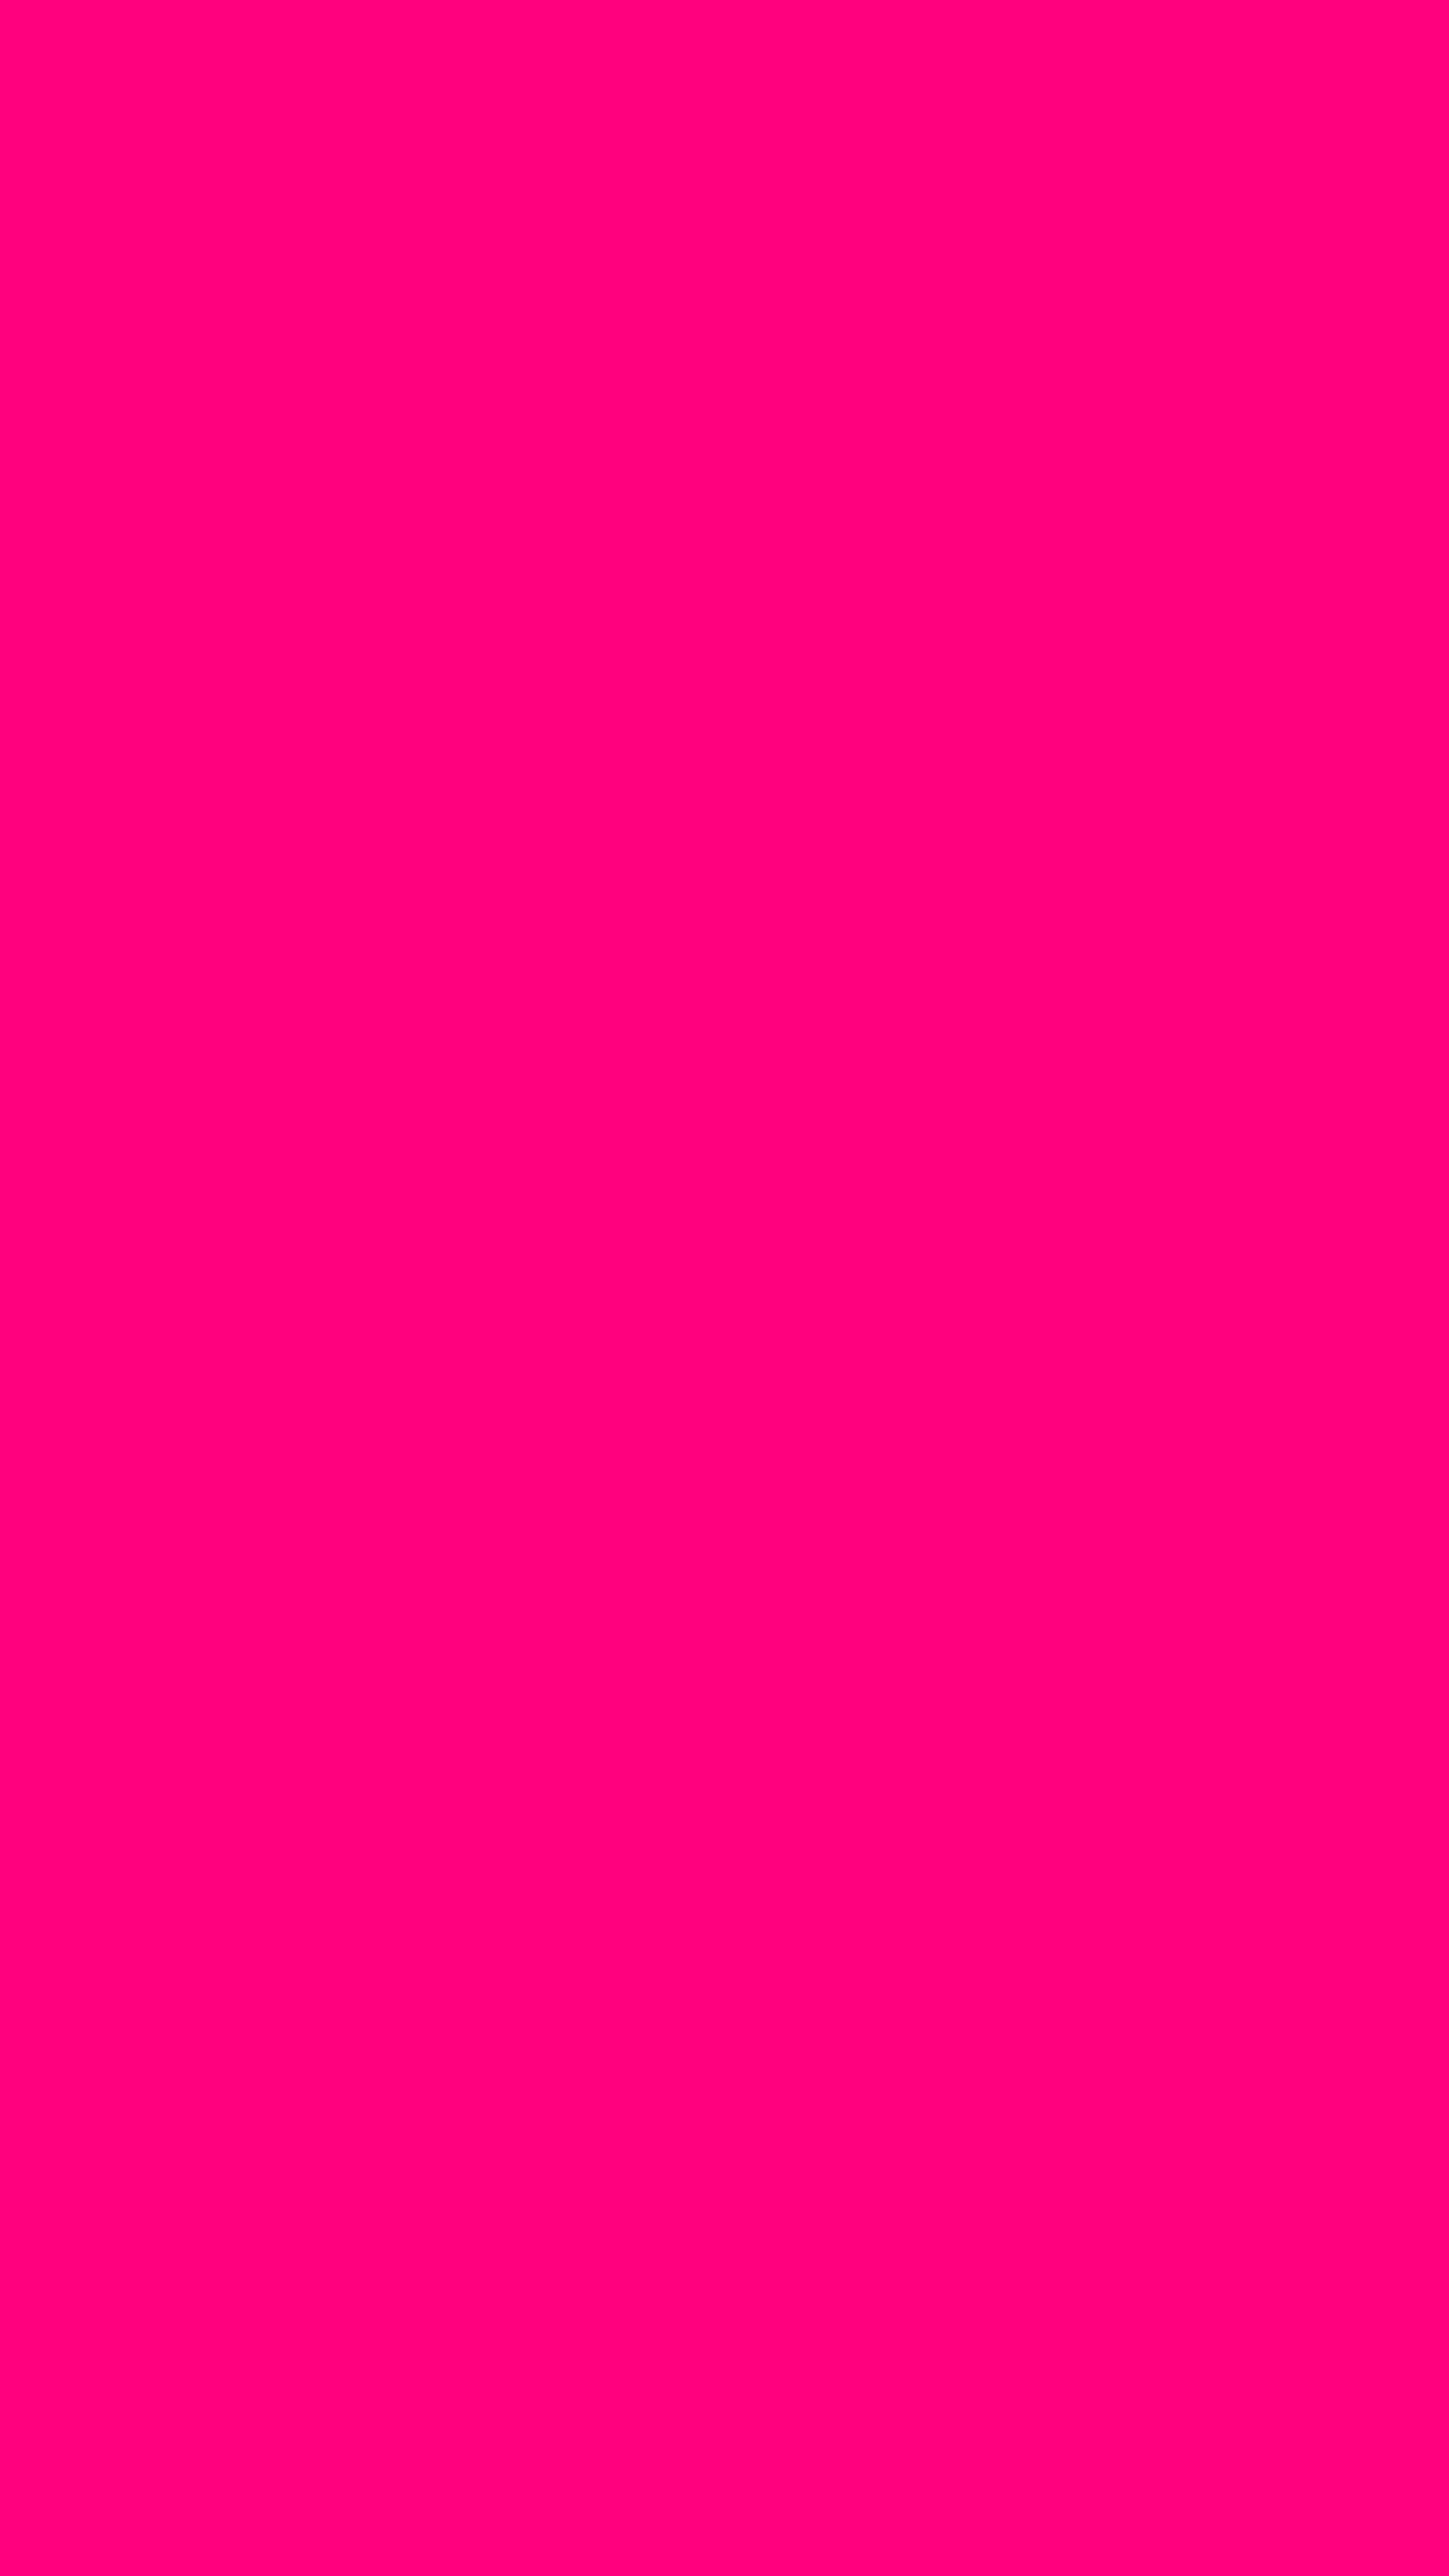 Bright Pink Solid Color Background Wallpaper For Mobile Phone